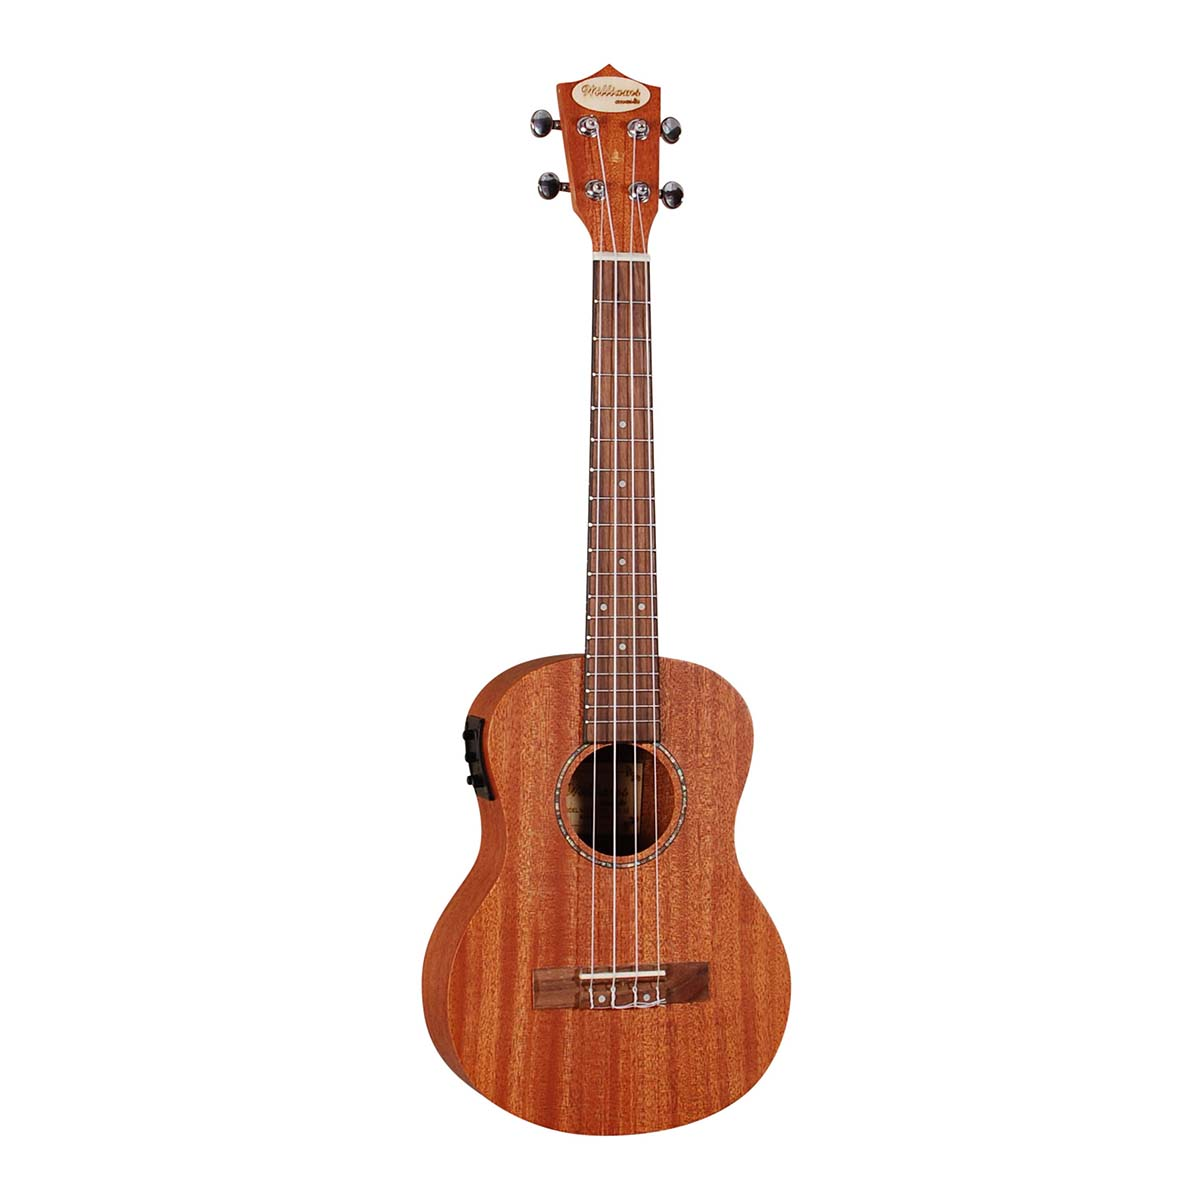 Køb Williams Acoustic EU100T-EQ v2 tenor ukulele til 1.099,00 kr.